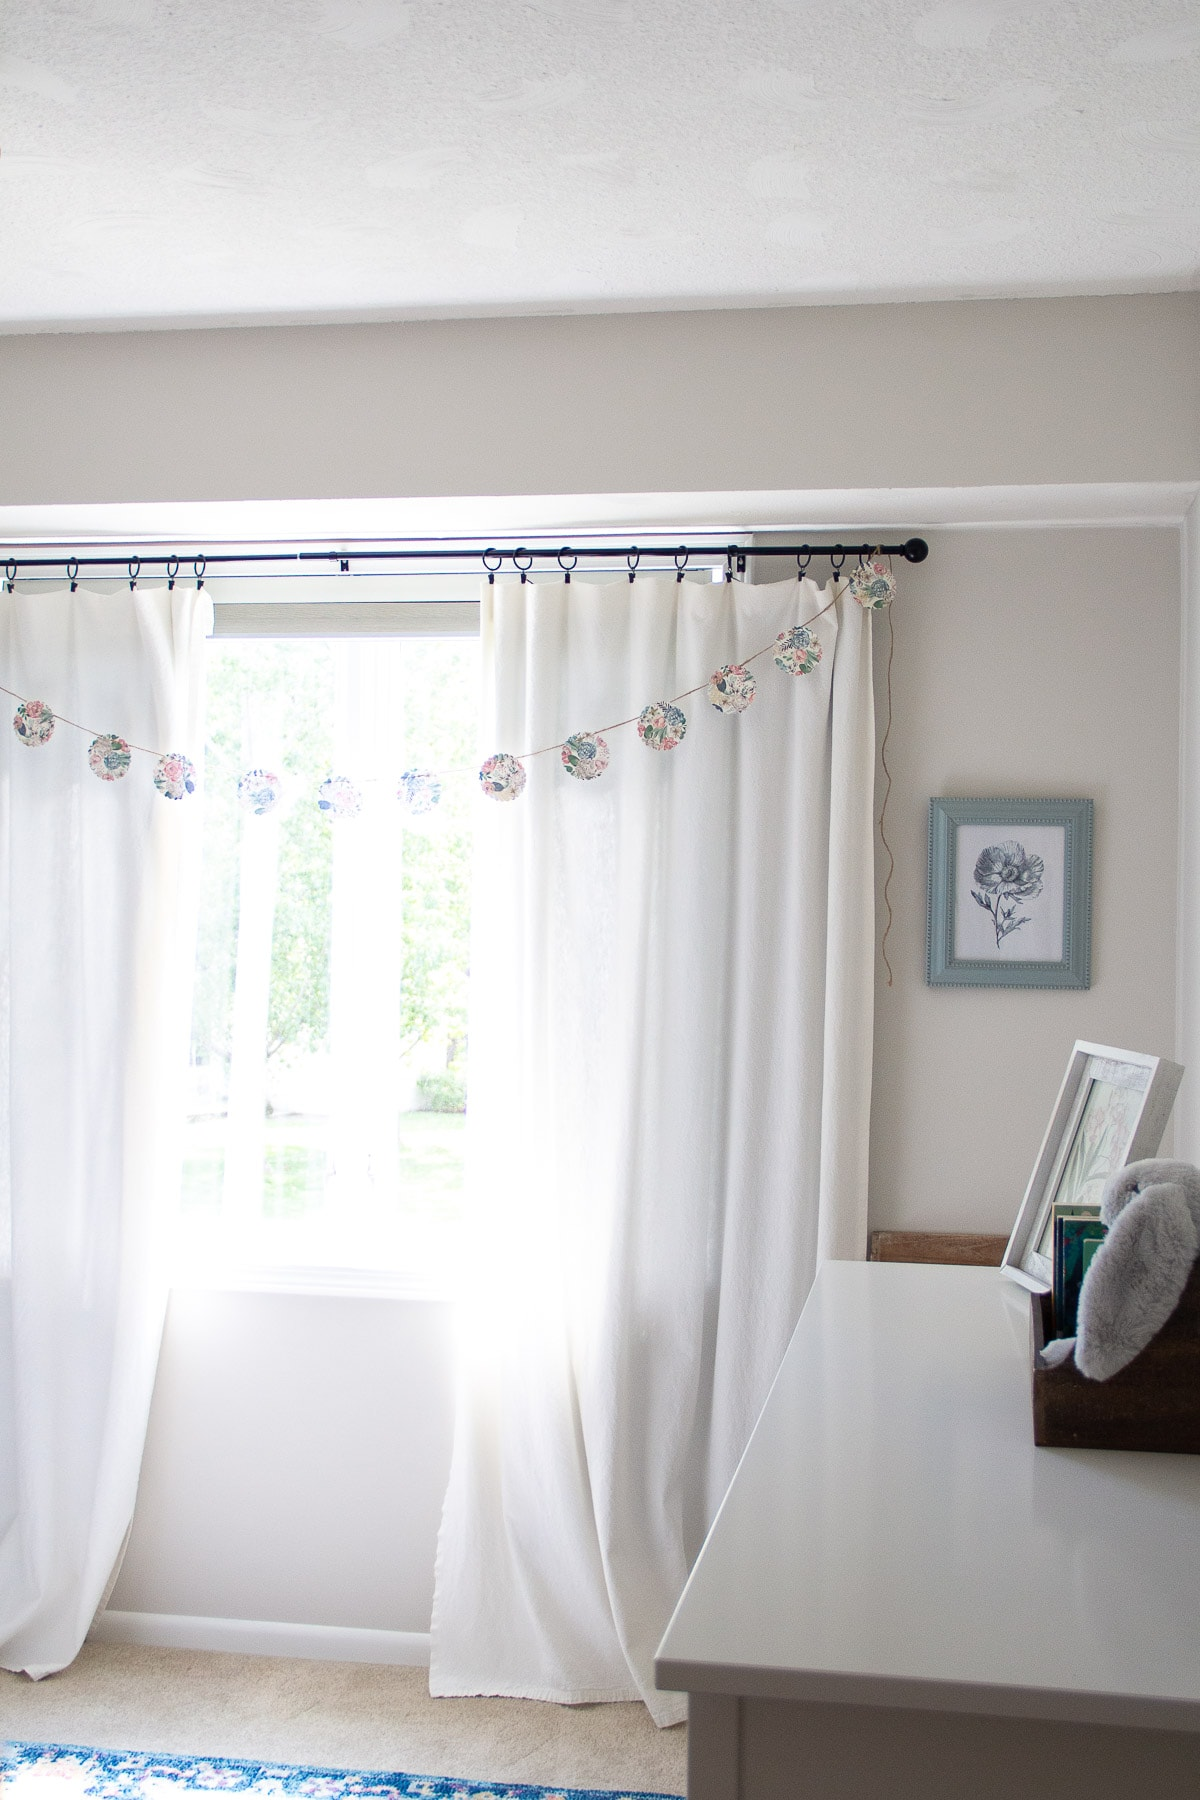 Bleached drop cloth curtains hanging in a nursery.